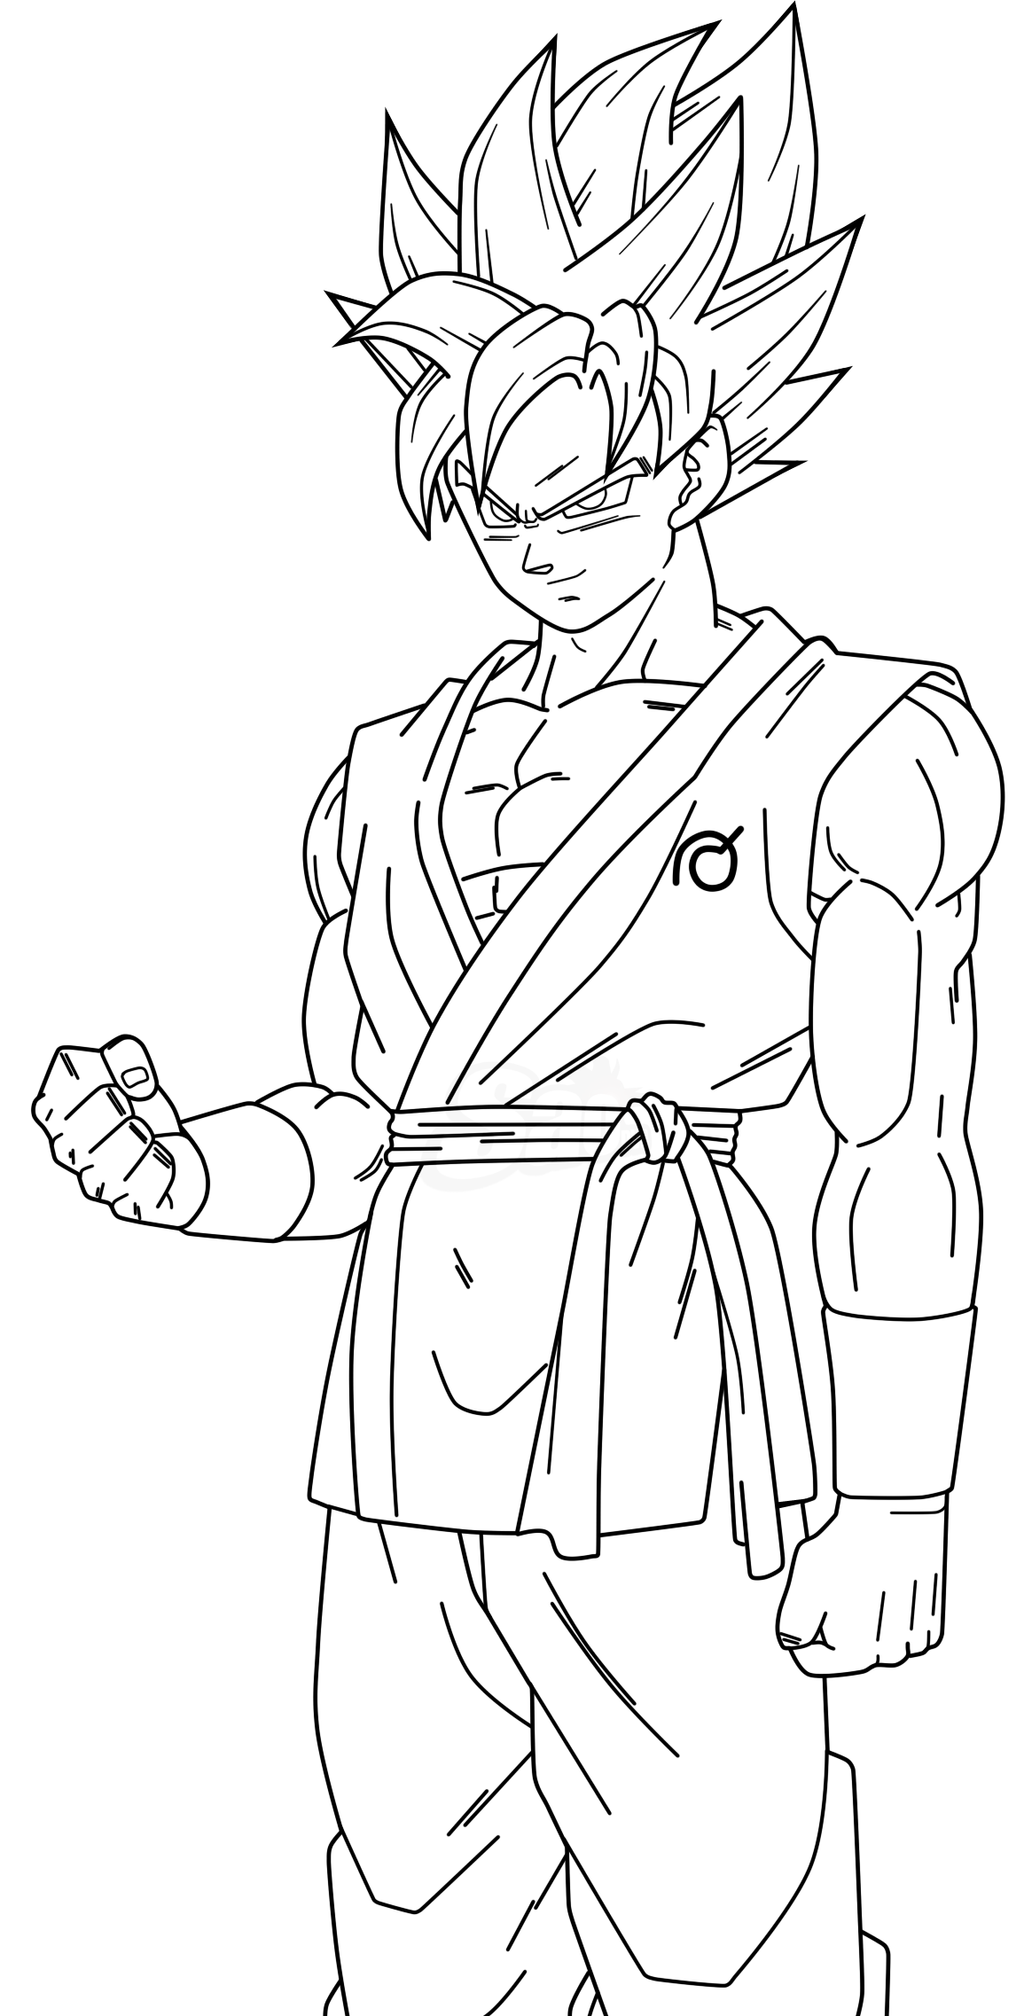 Goku SSJ Blue - Lineart 2 by SaoDVD on DeviantArt